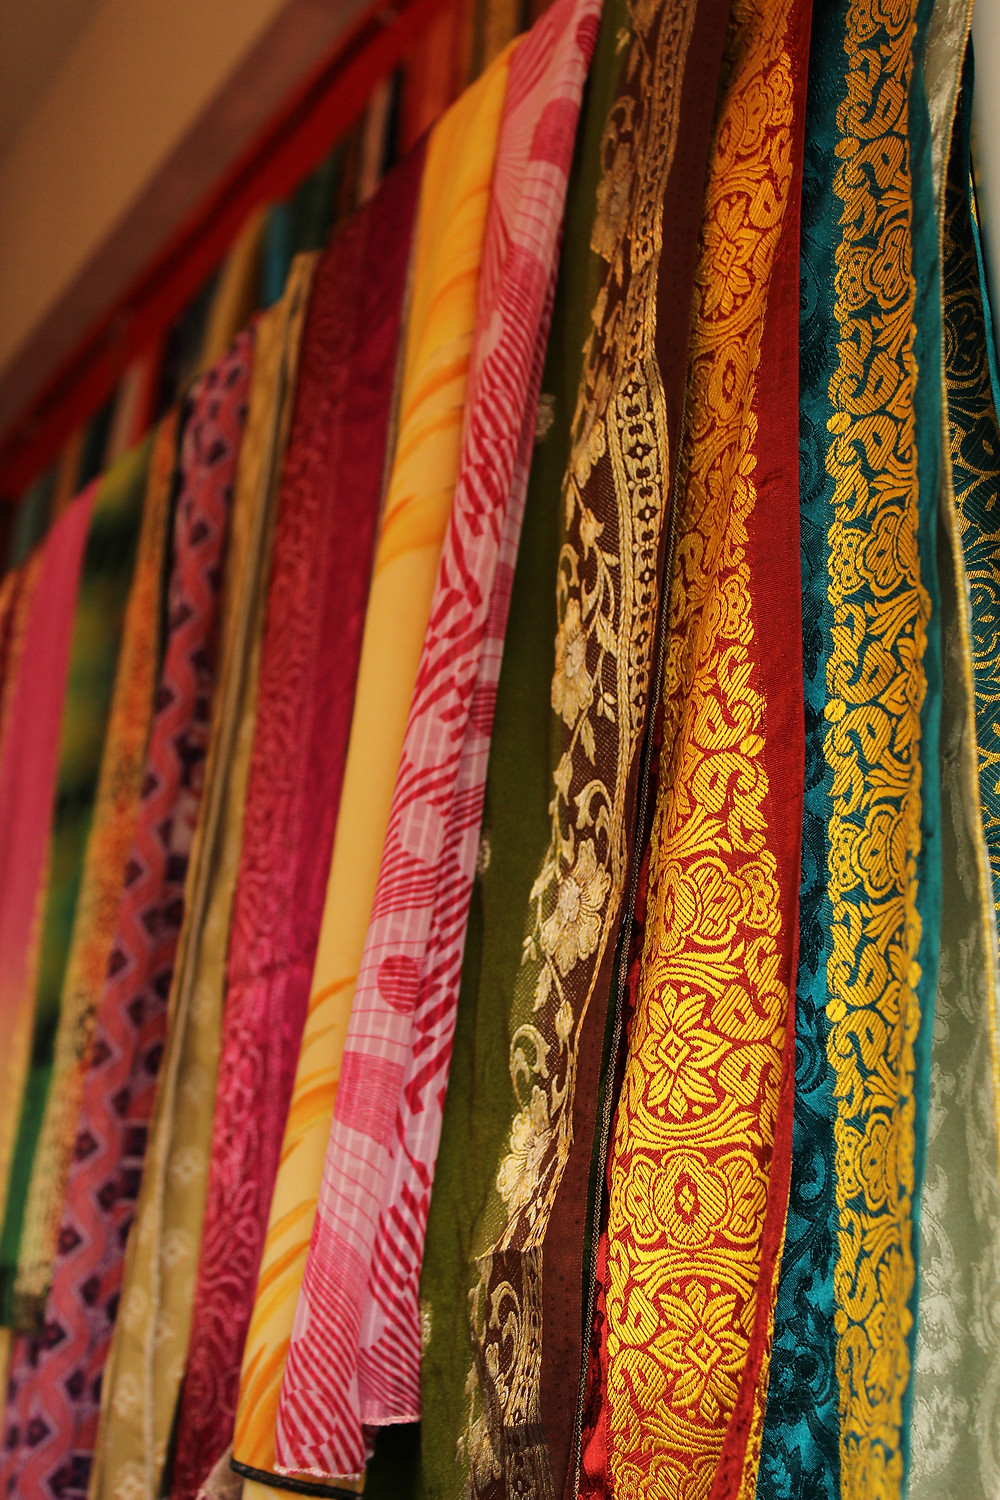 A collection of brightly-colored fabrics overlaid over one another. They are covered in intricate golden detailing.